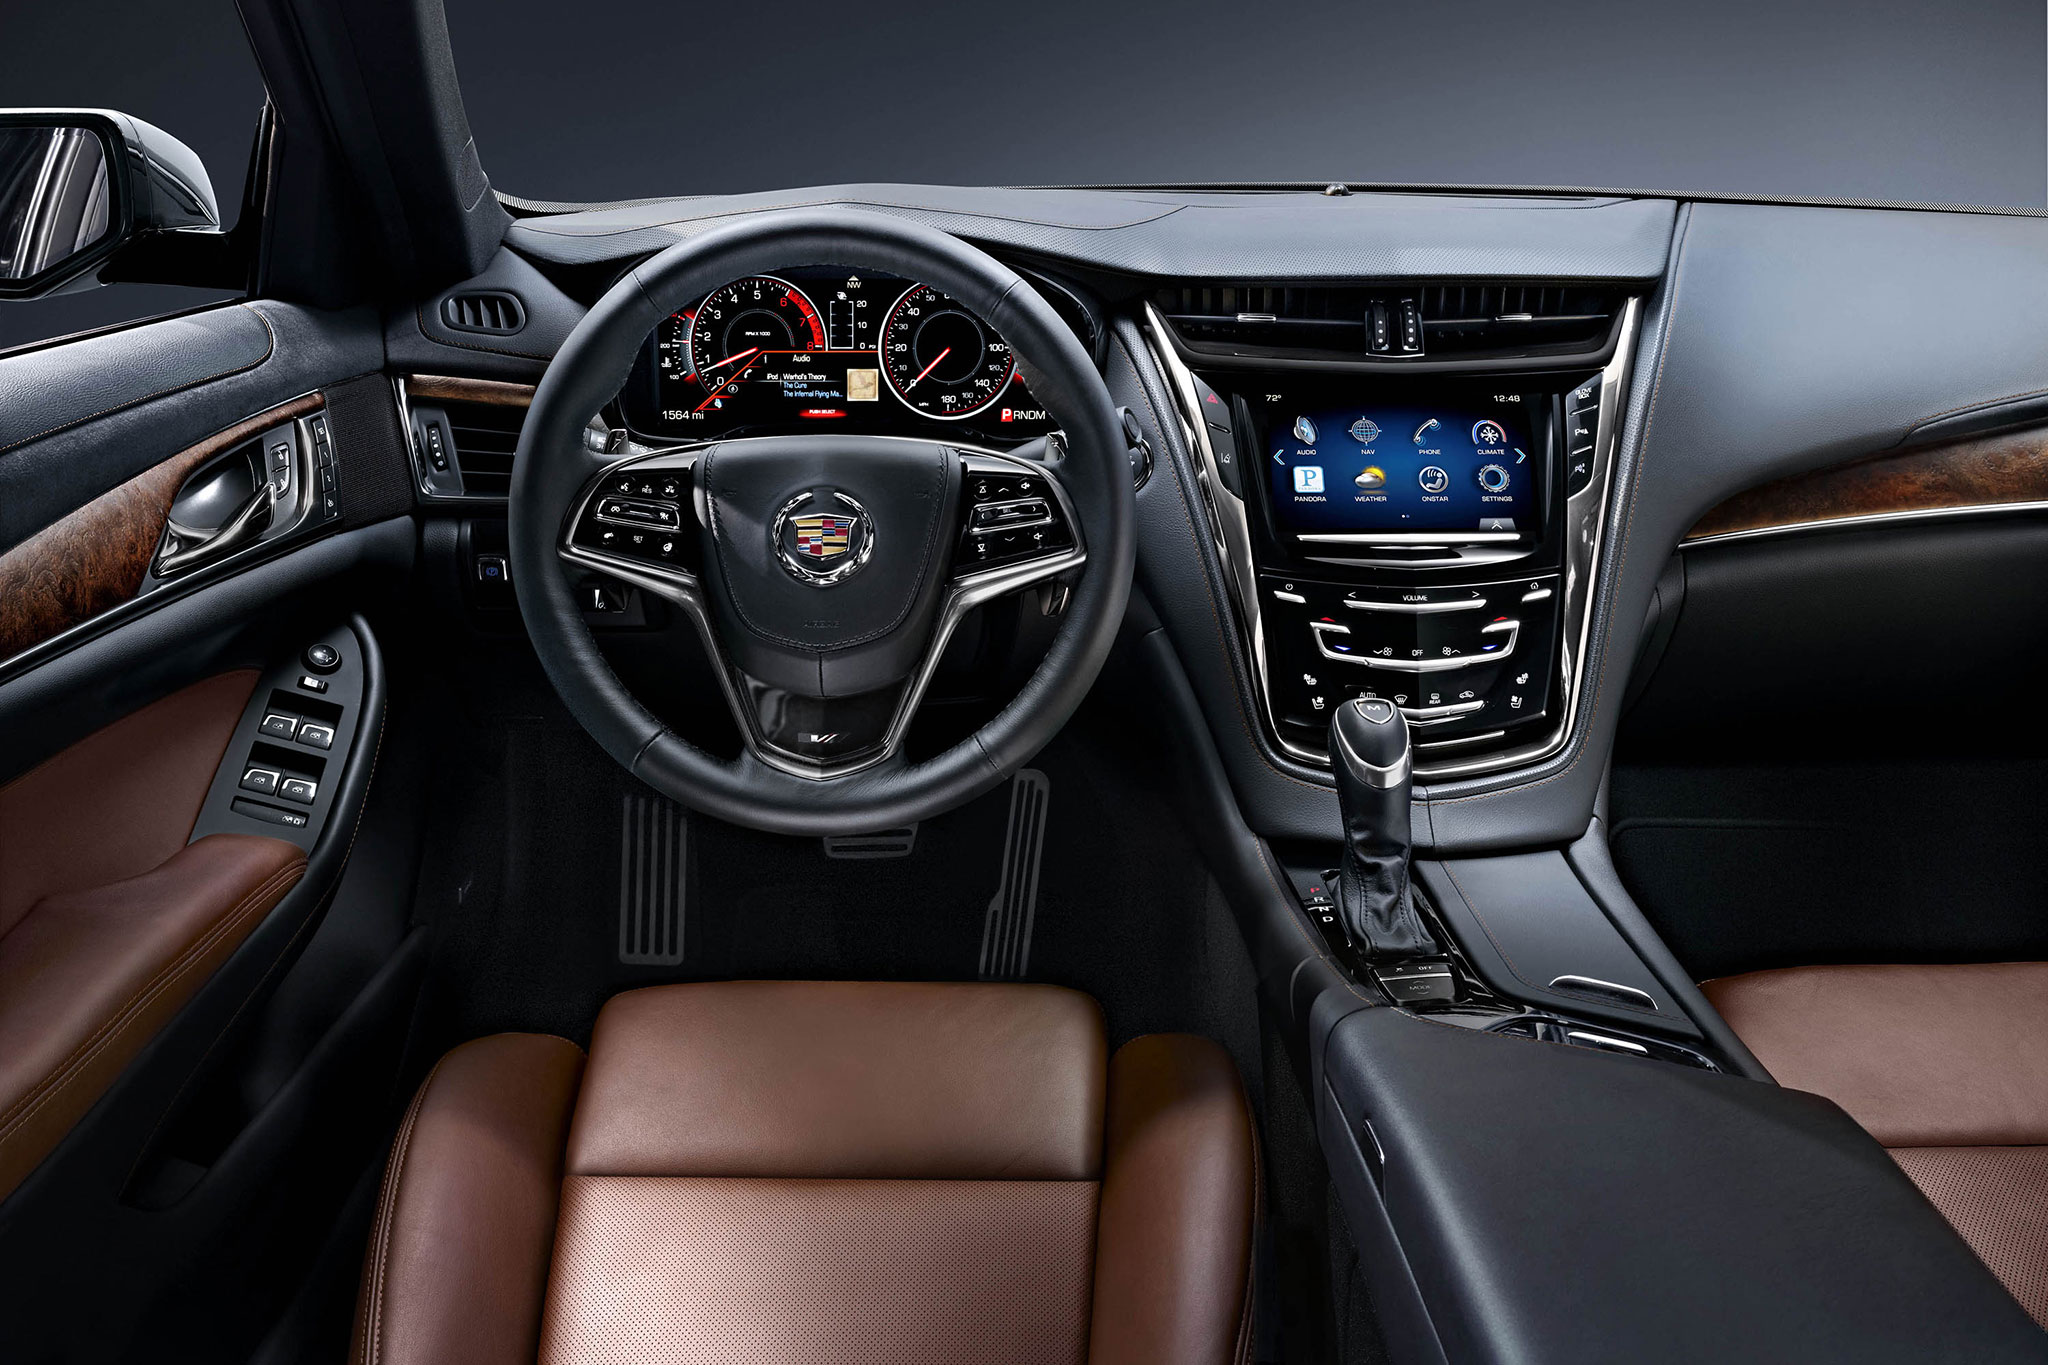 2014 Cadillac CTS - 2014 Automobile of the Year Finalist